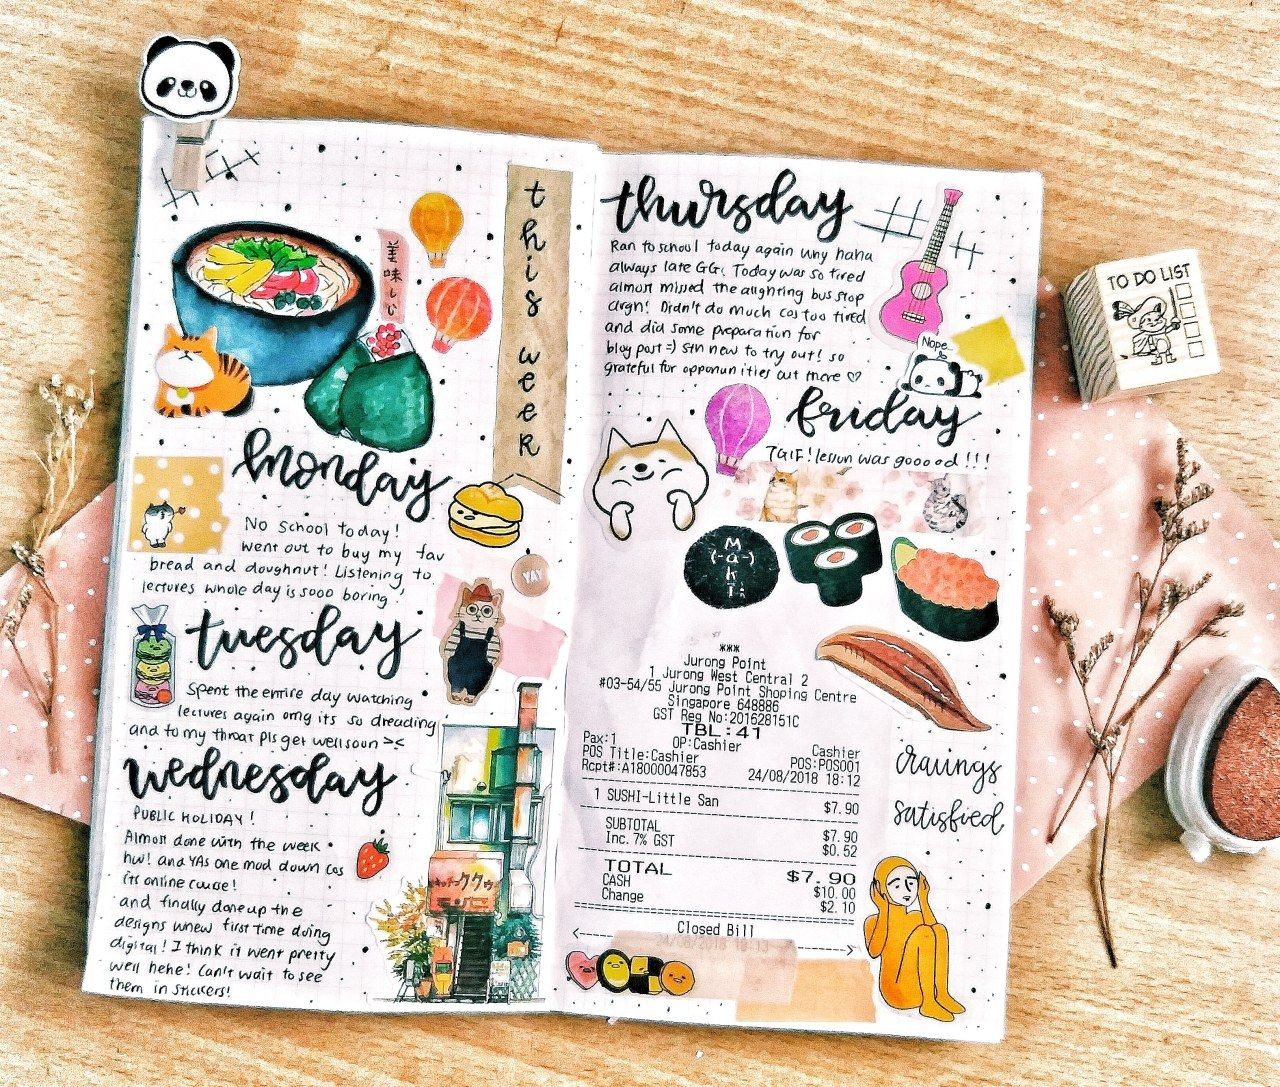 artlove98 – NotebookTherapy